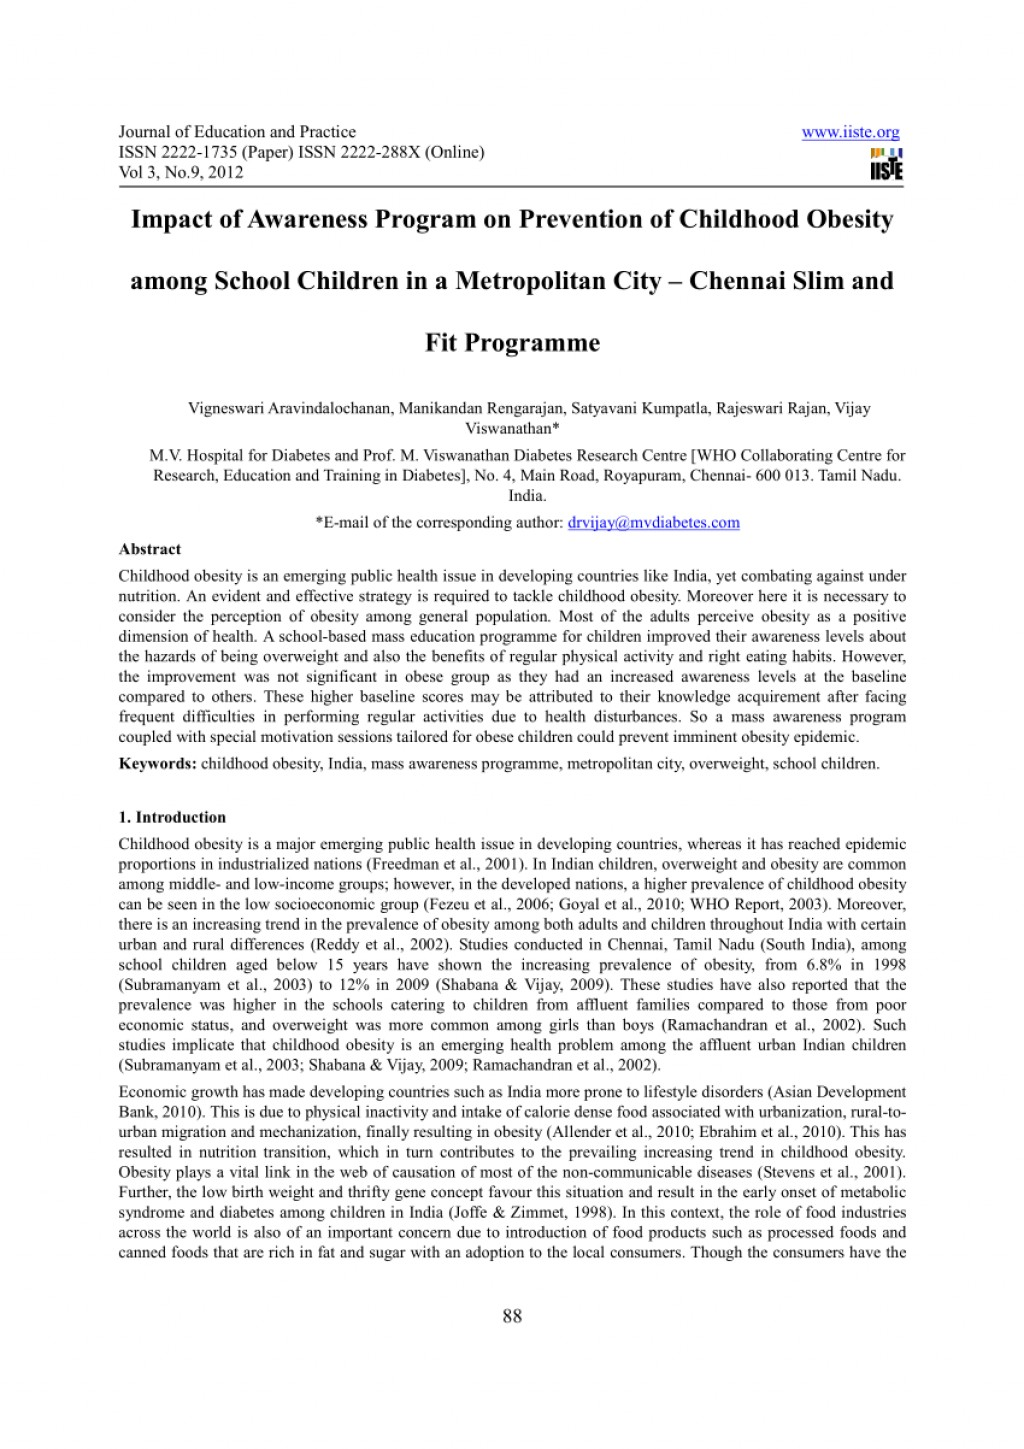 015 Research Paper Childhood Obesity Papers Unusual Thesis Statement Articles Abstract Large